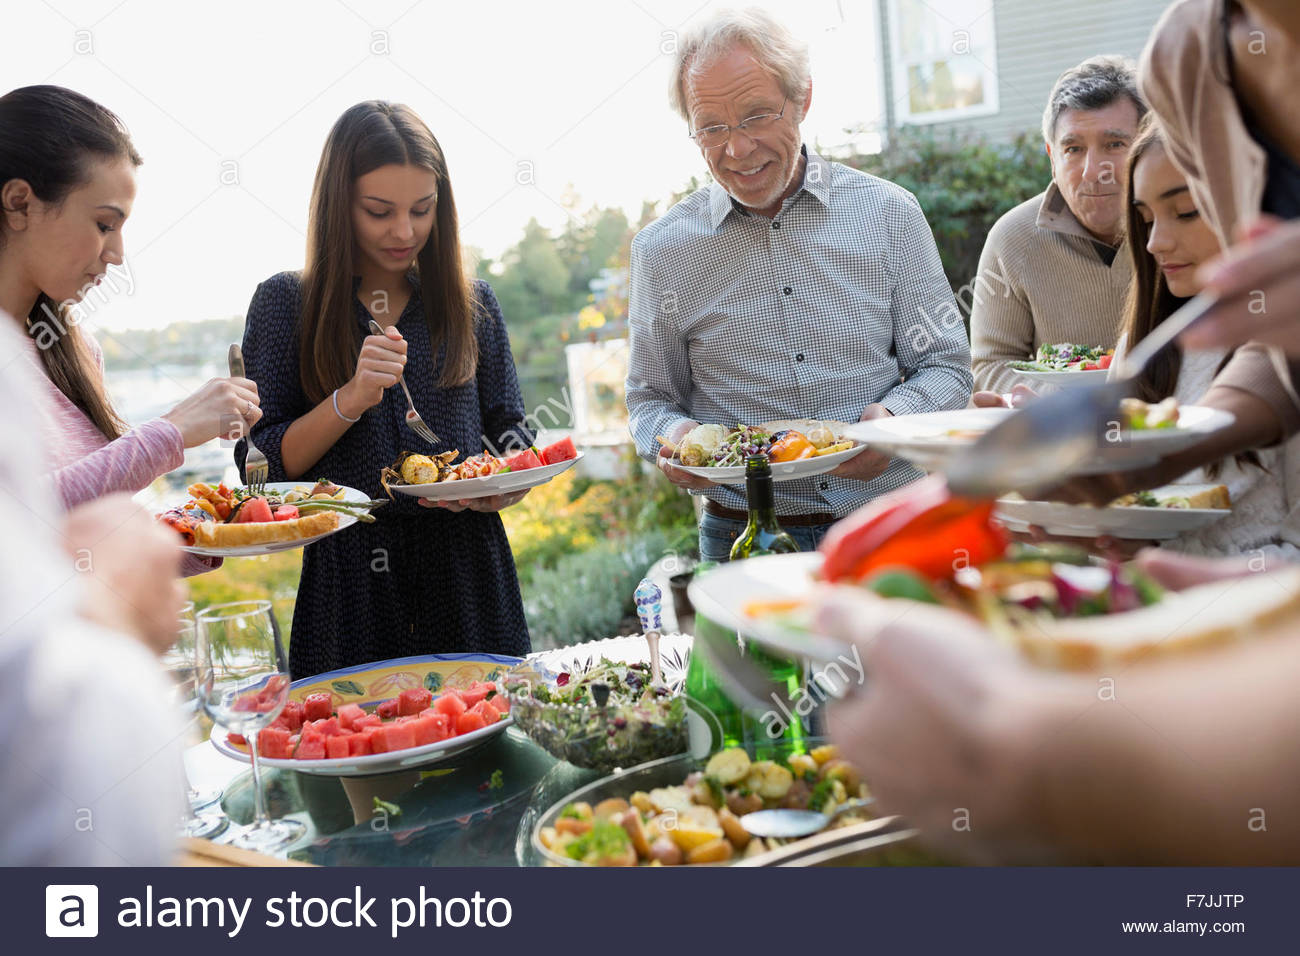 Multi-generation family serving food at buffet patio - Stock Image